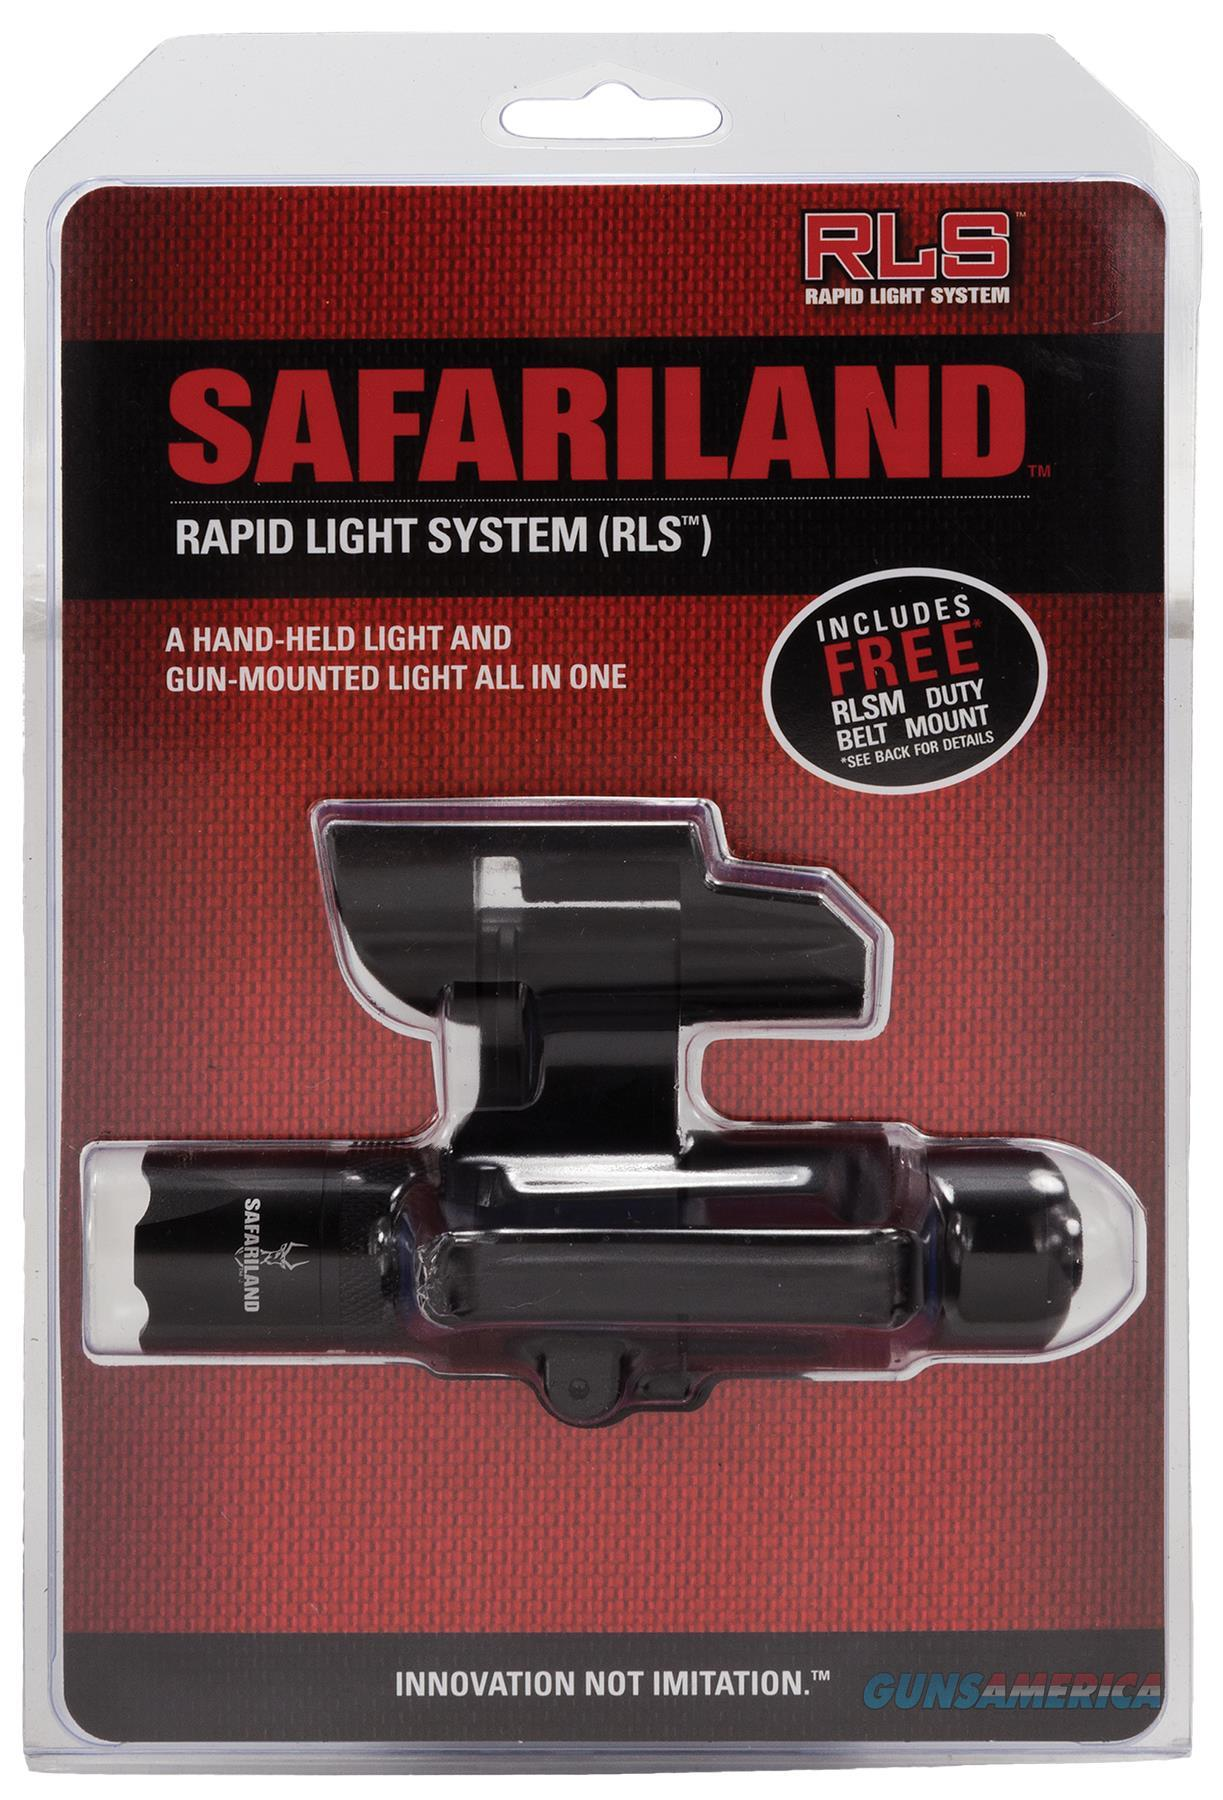 Safariland Rls13pic1 Rapid Light System & Mount Ambidextrous Aaa(3) Black RLS13PIC1  Non-Guns > Gun Parts > Misc > Rifles